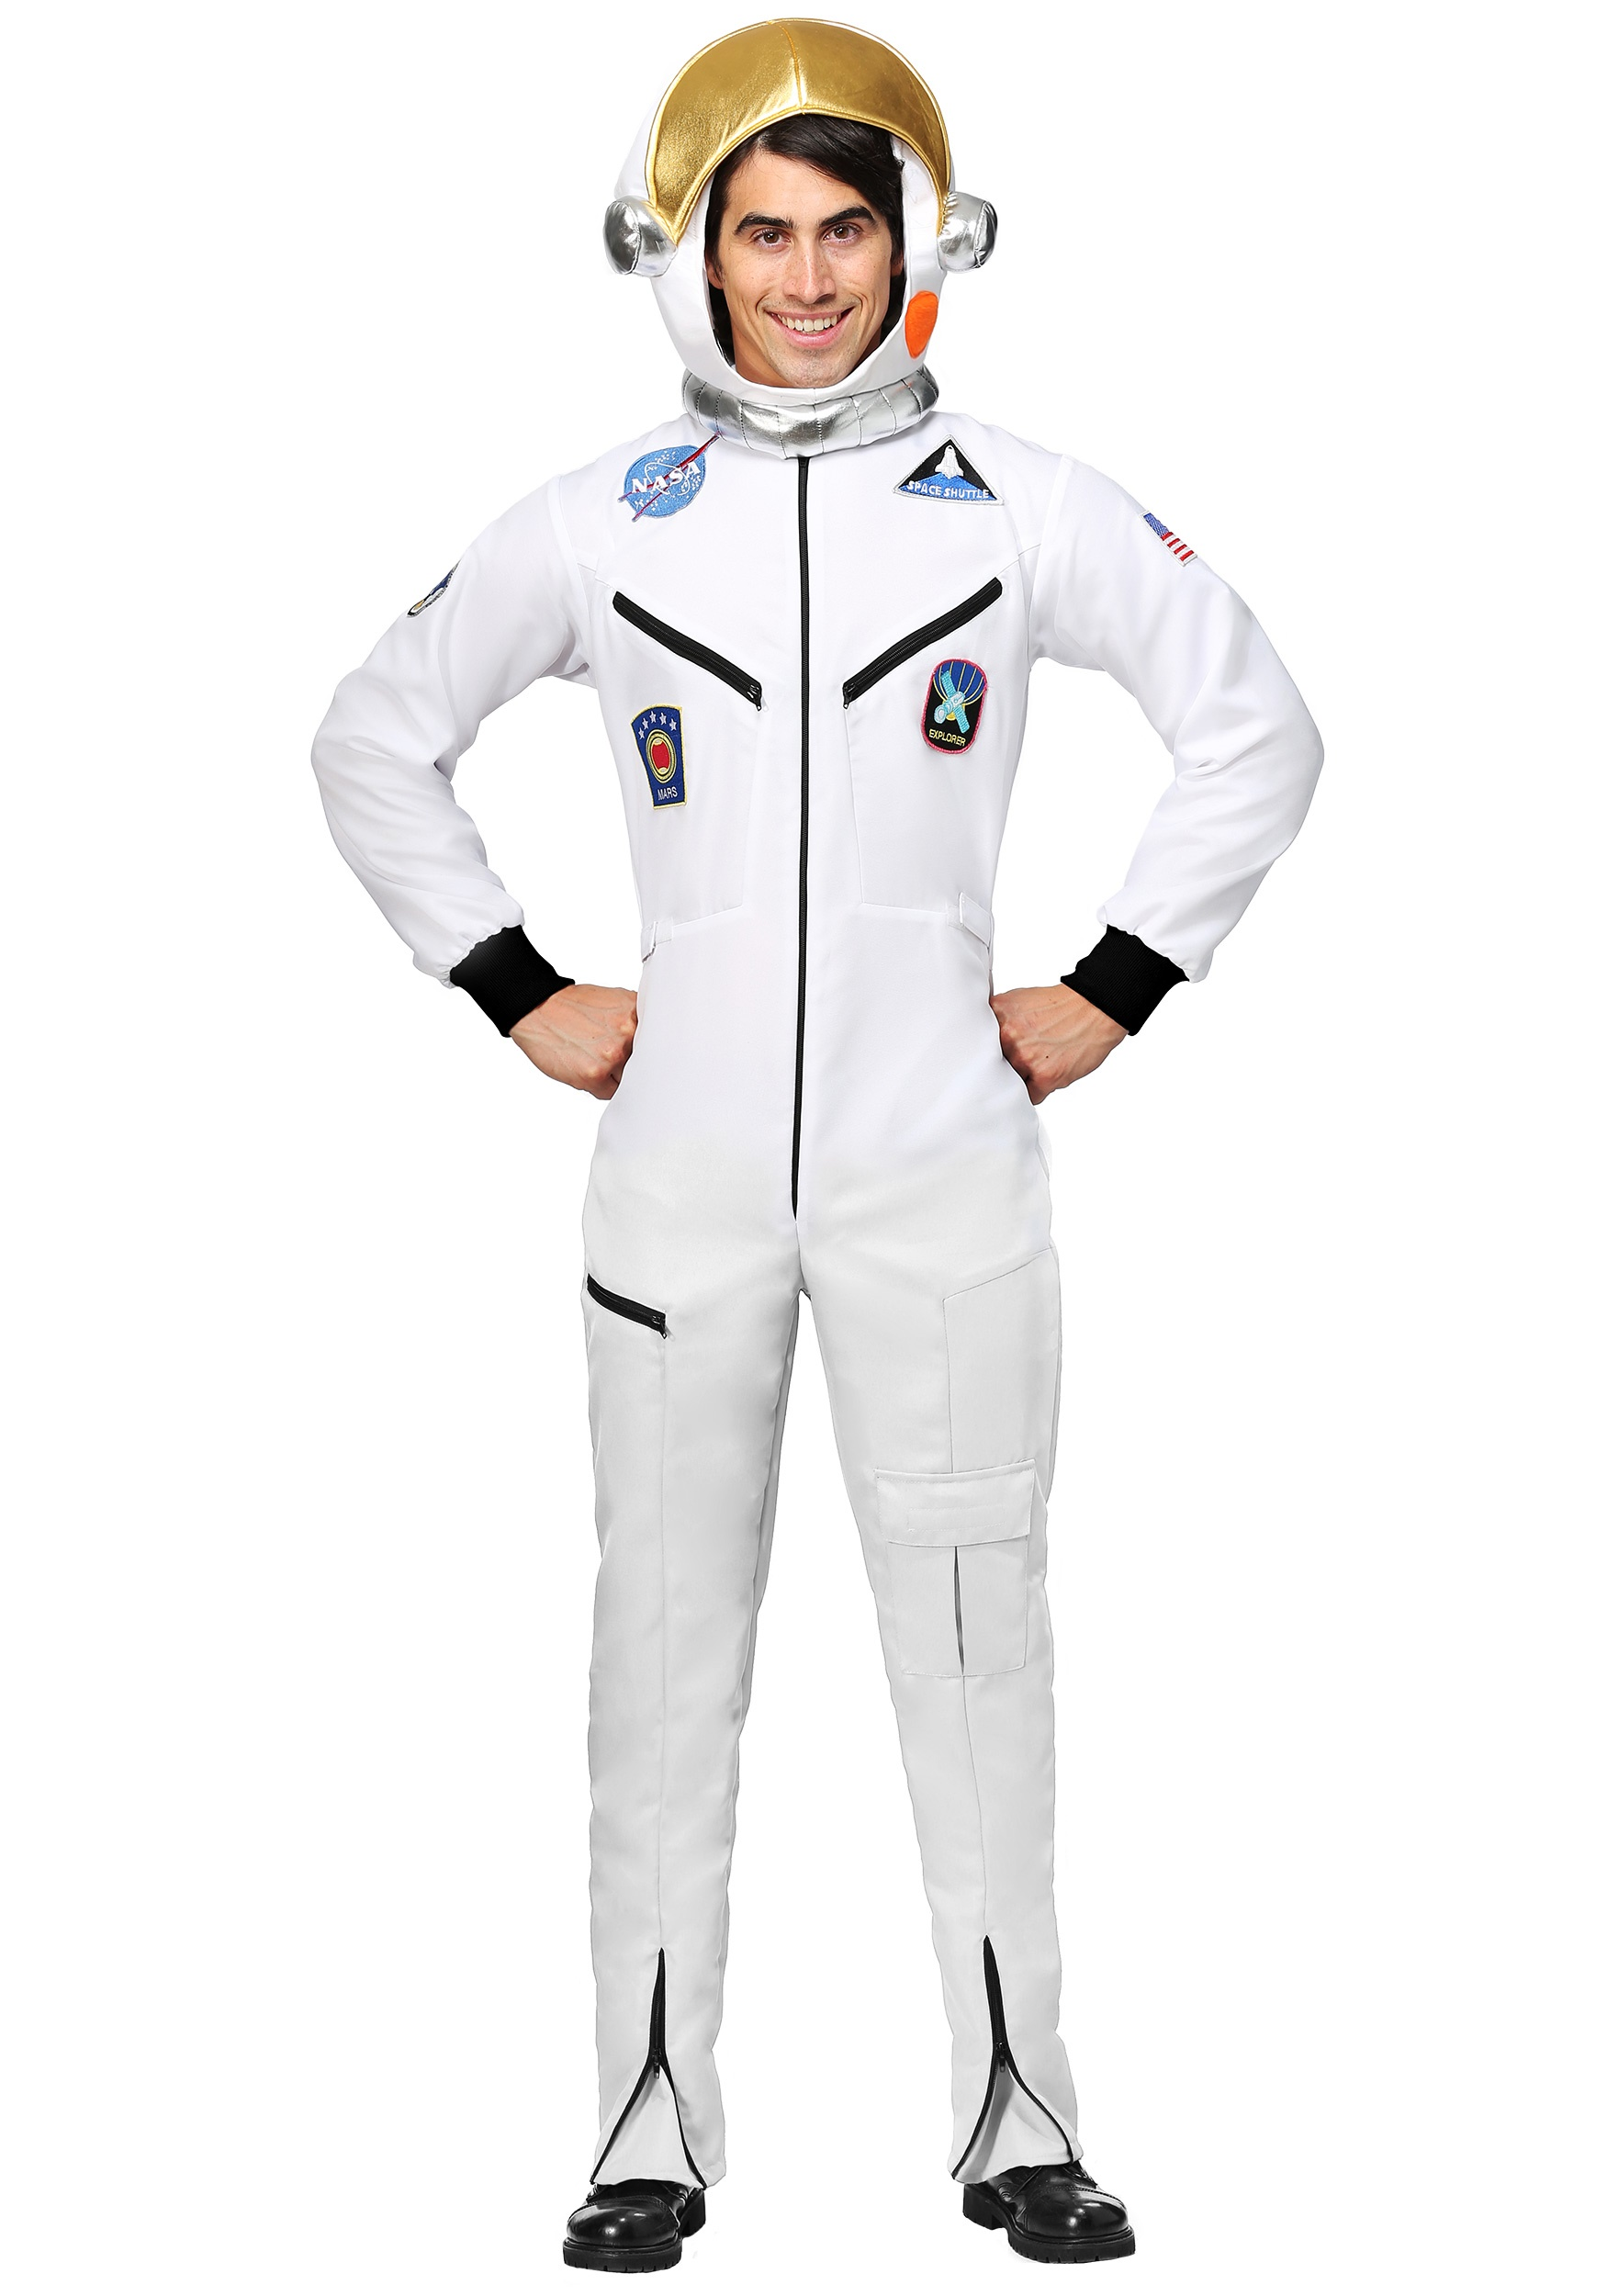 a3177a6103c7 White Astronaut Jumpsuit Adult Plus Size Costume 2X 3X 4X